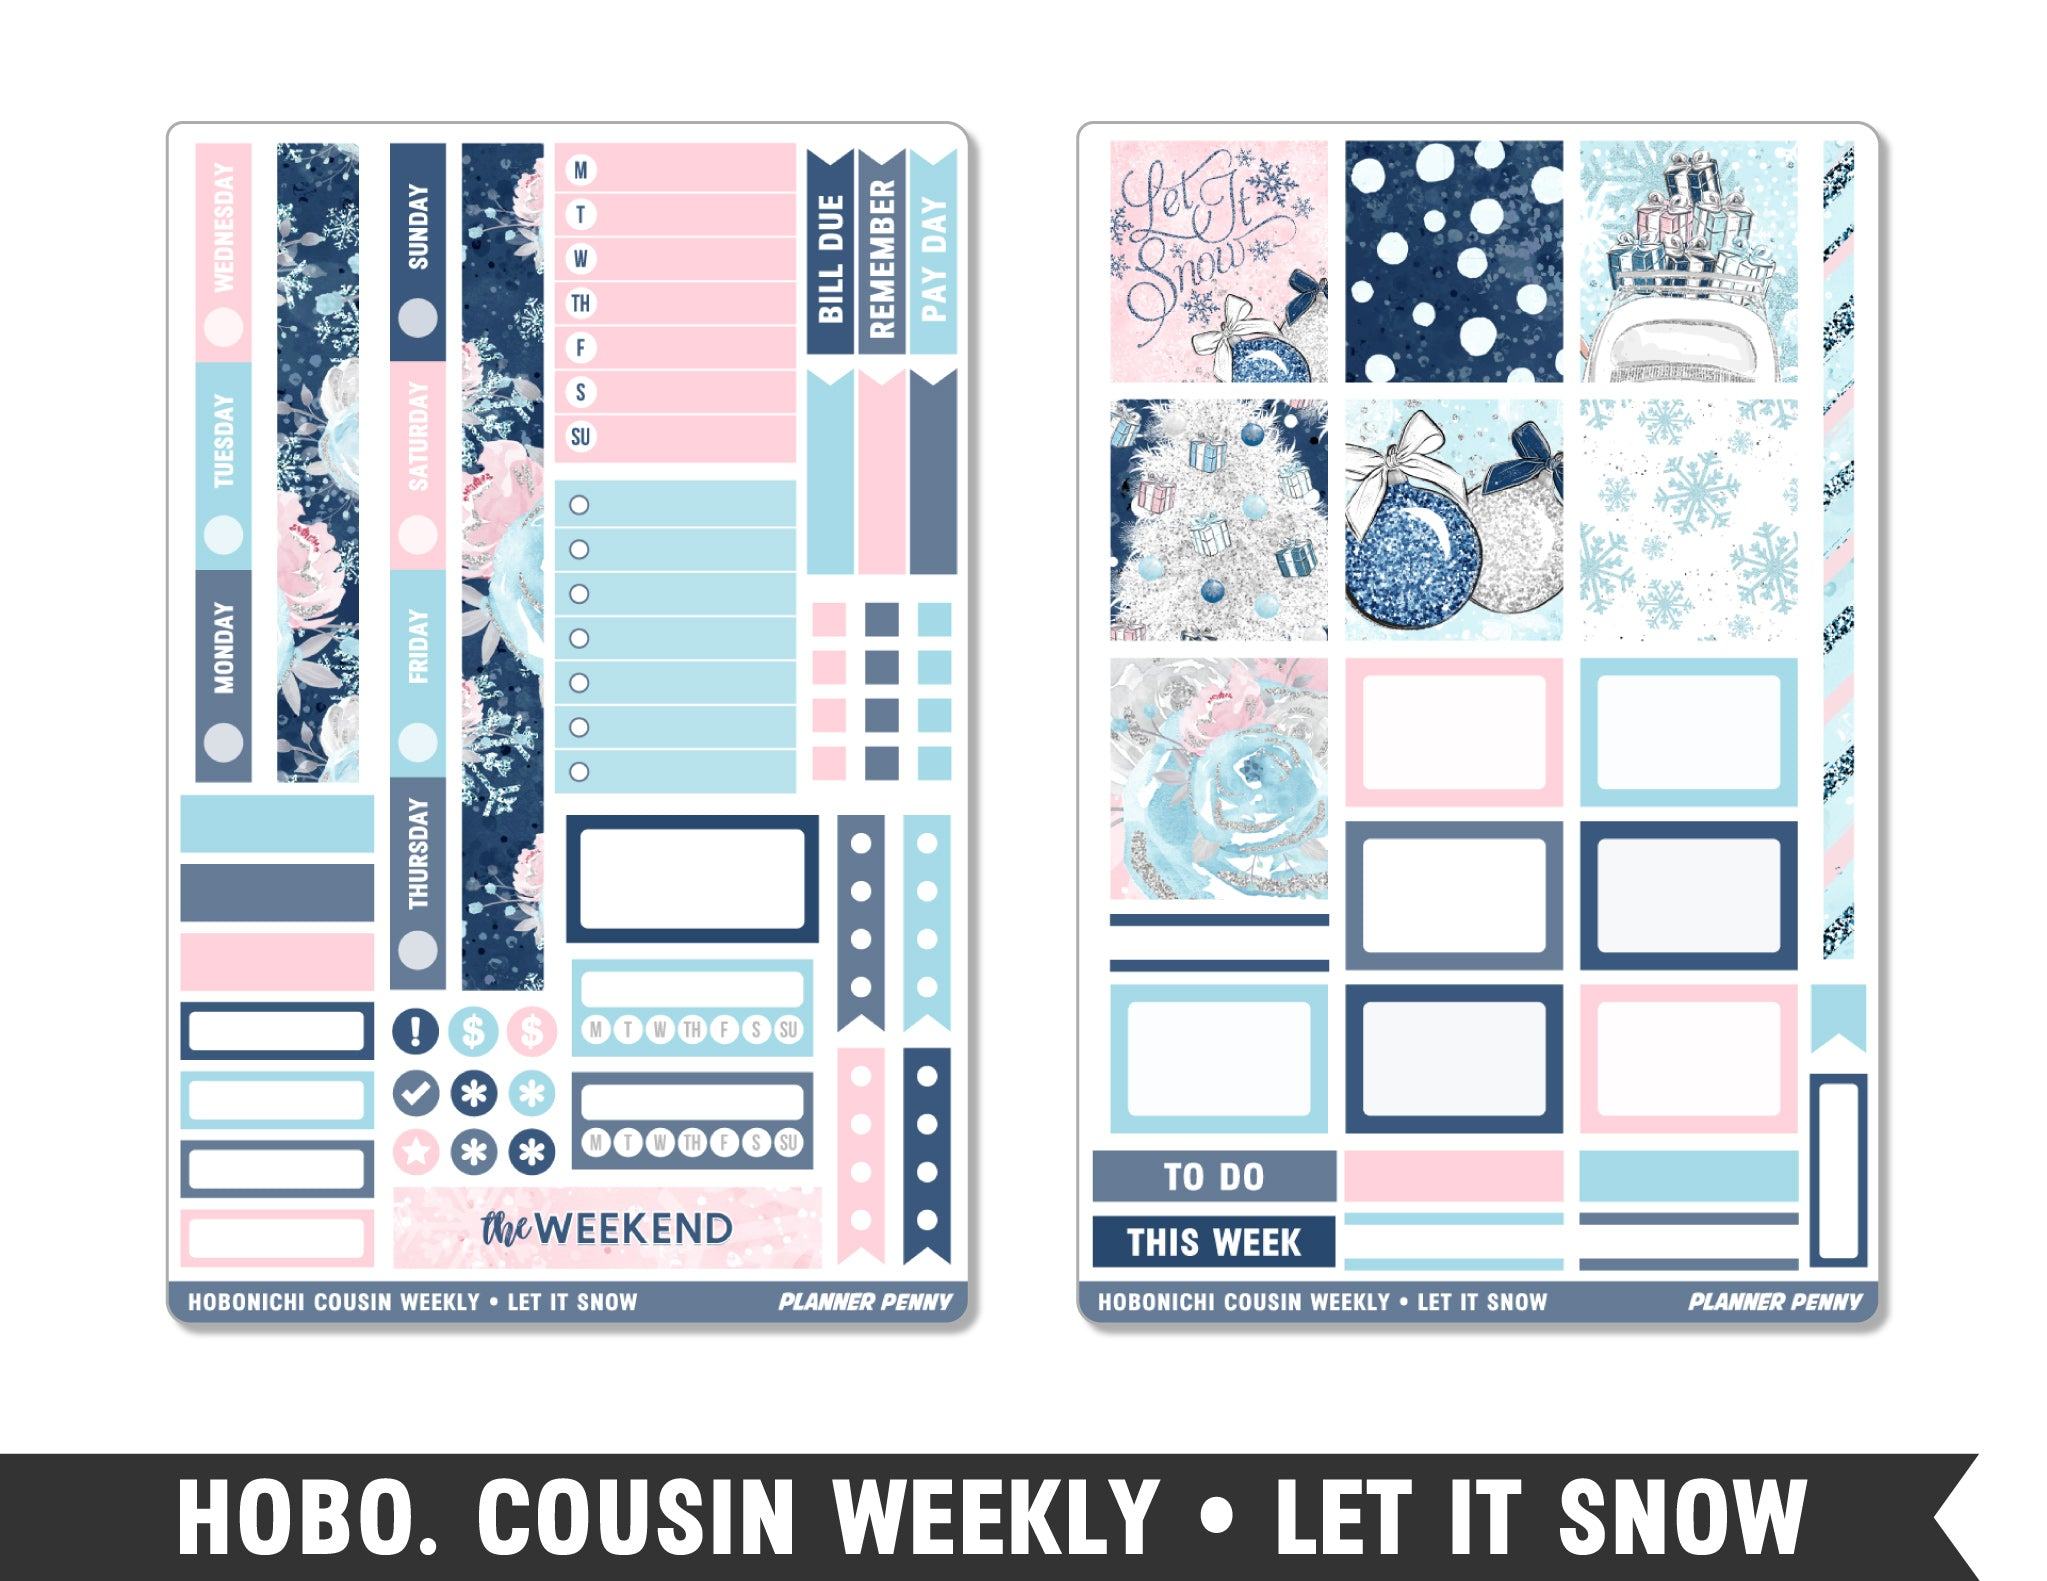 Hobonichi Cousin • Let It Snow • Weekly Spread Planner Stickers - Planner Penny